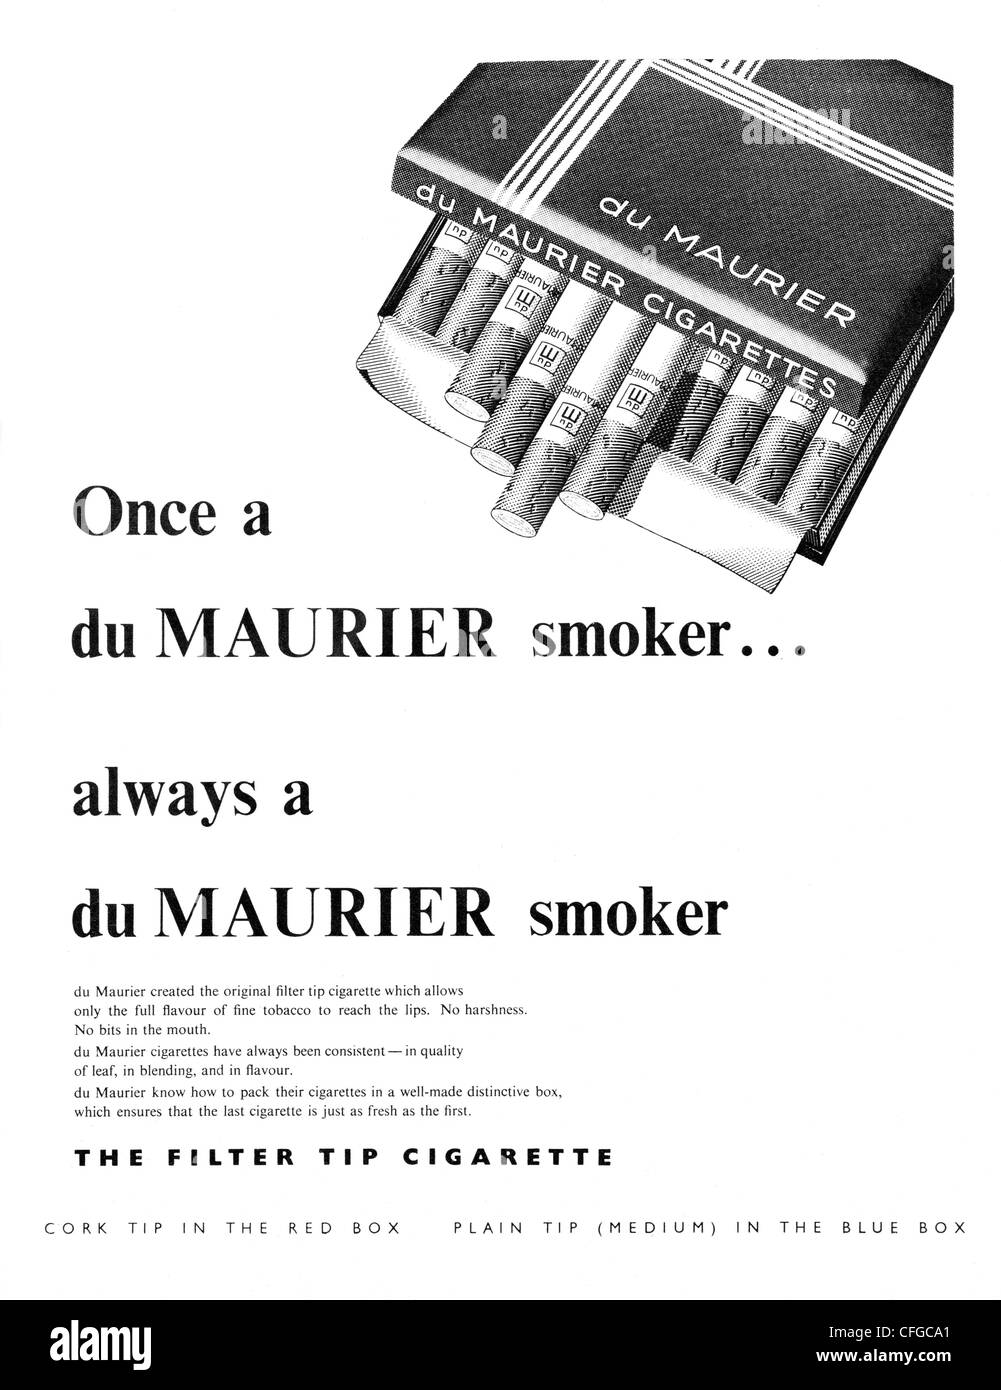 Du Maurier cigarettes advert from 1955 - Stock Image